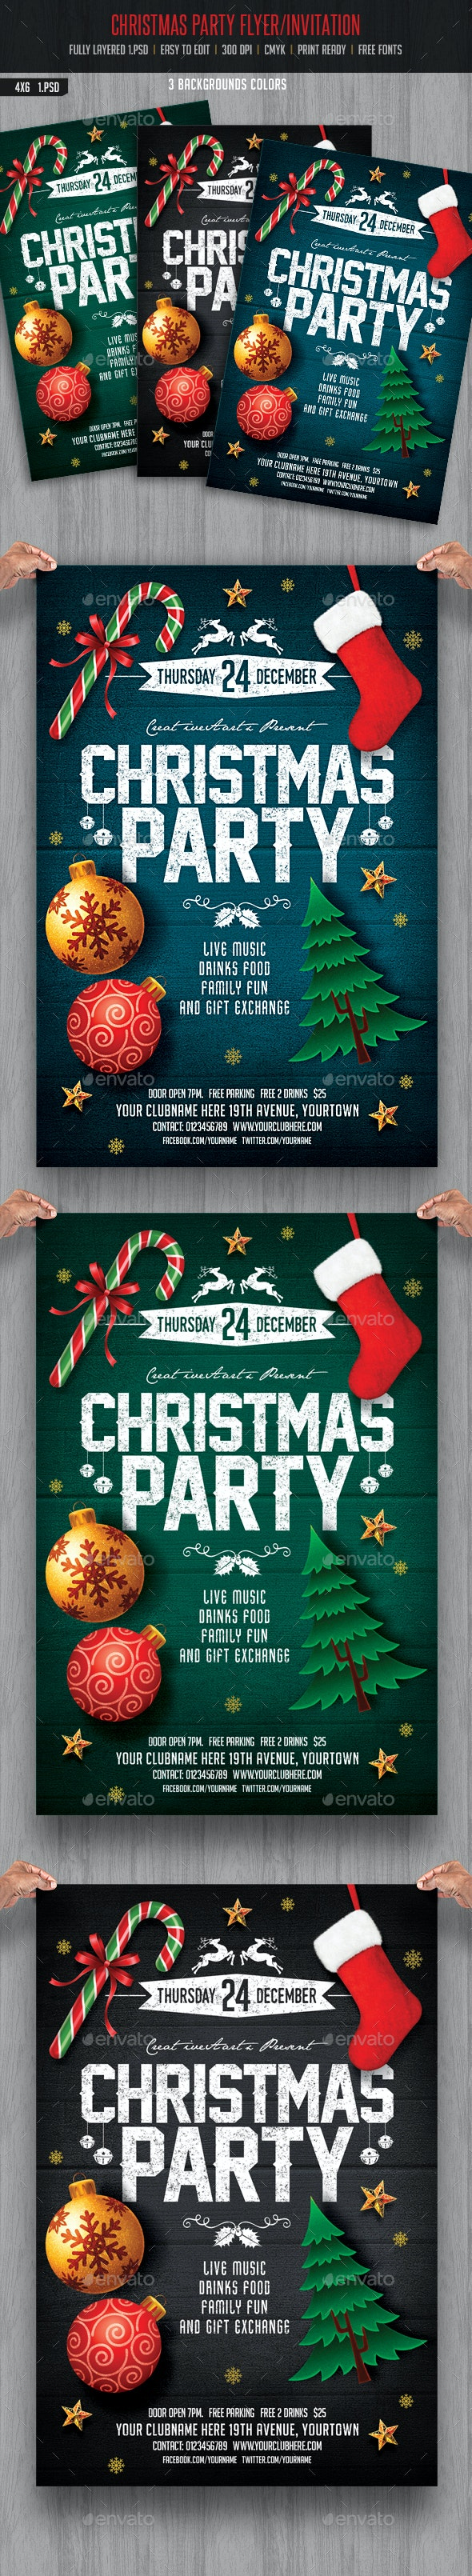 Christmas Party Flyer/ Invitation